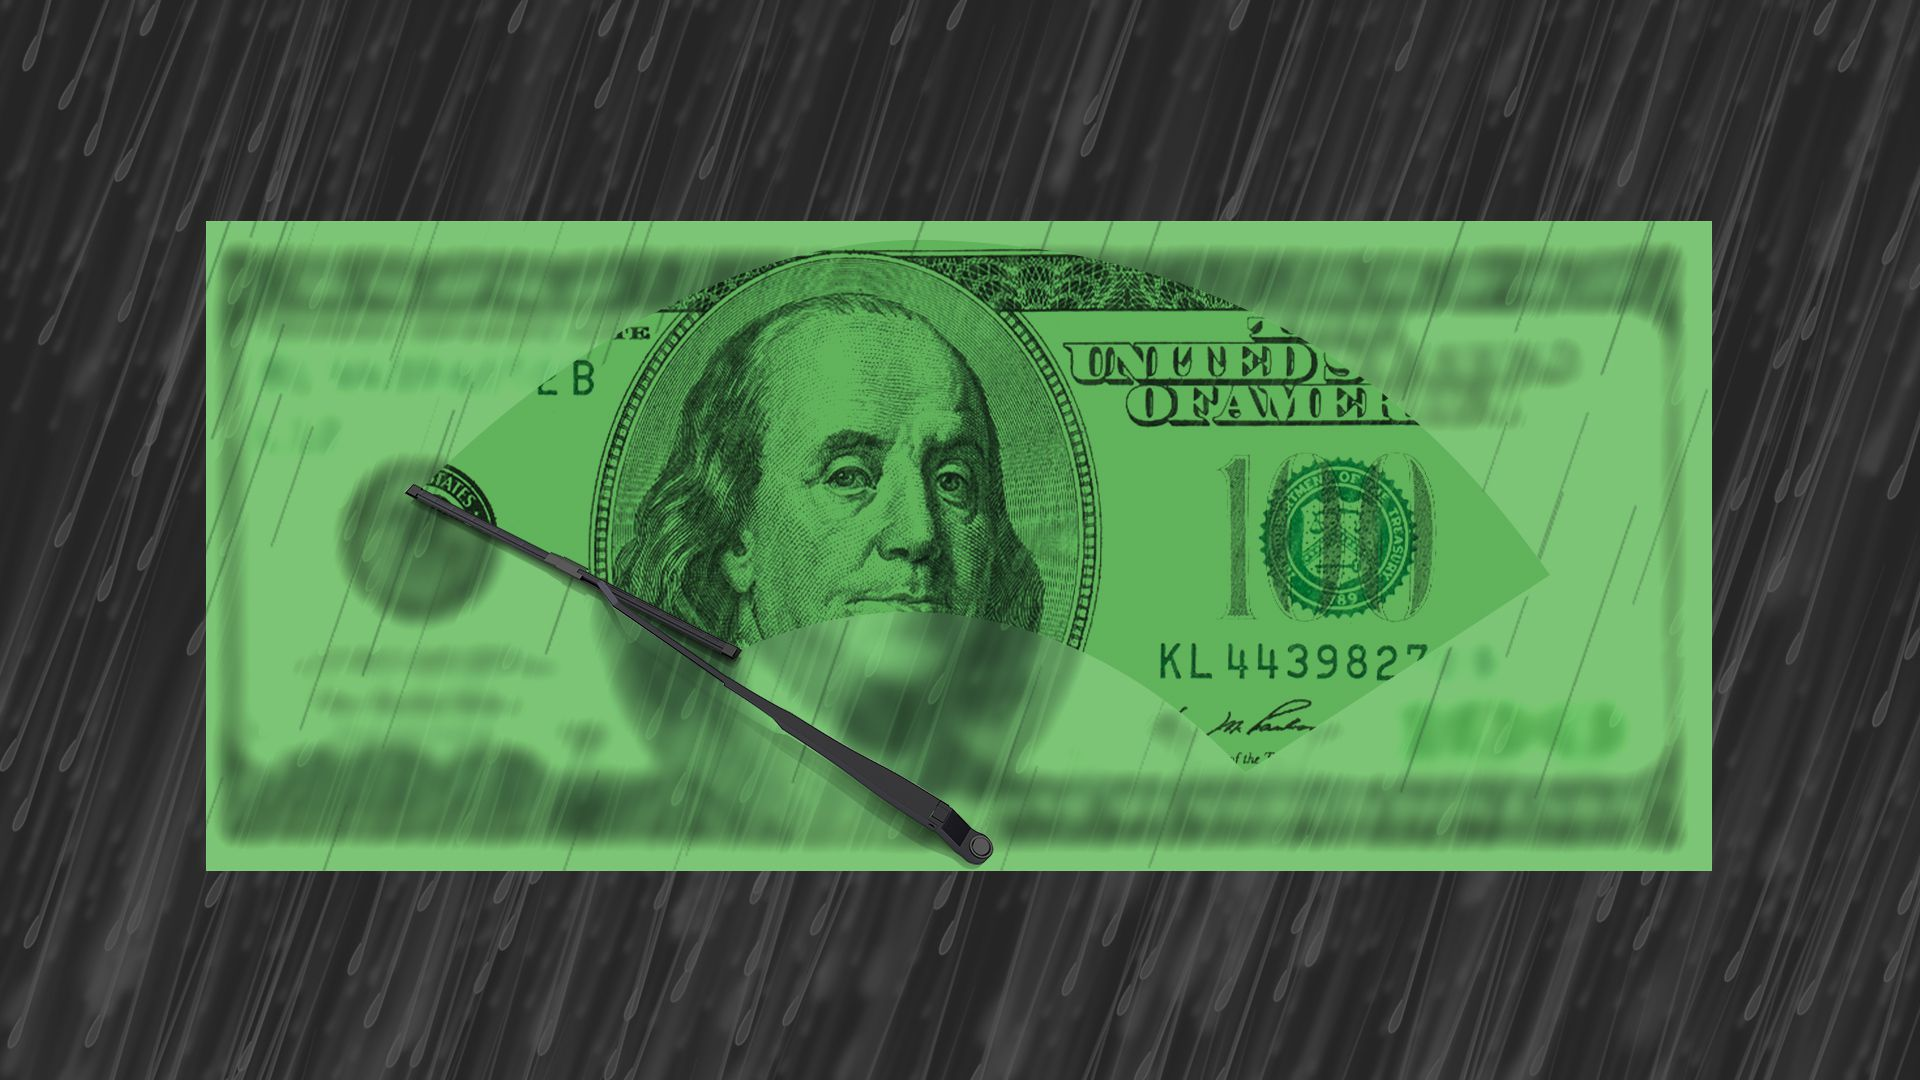 A Benjamin with wipers